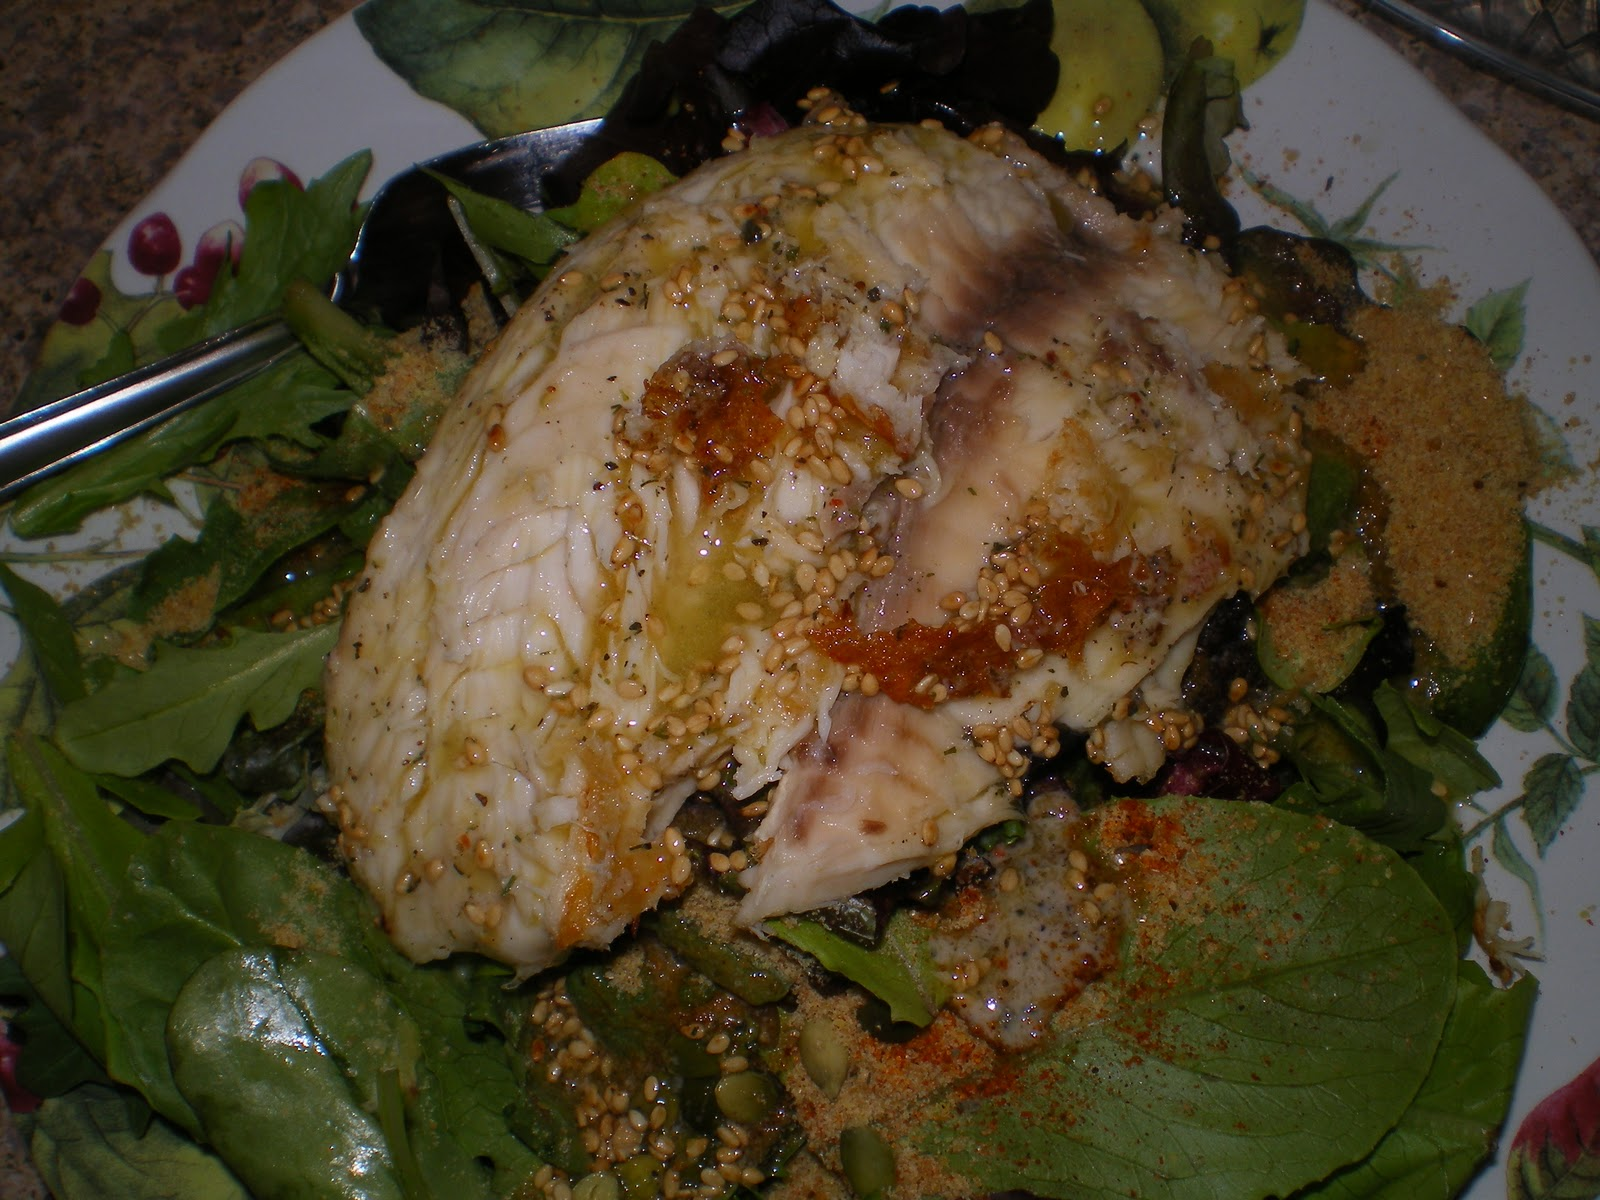 Spicy Tilapia over Mixed Greens